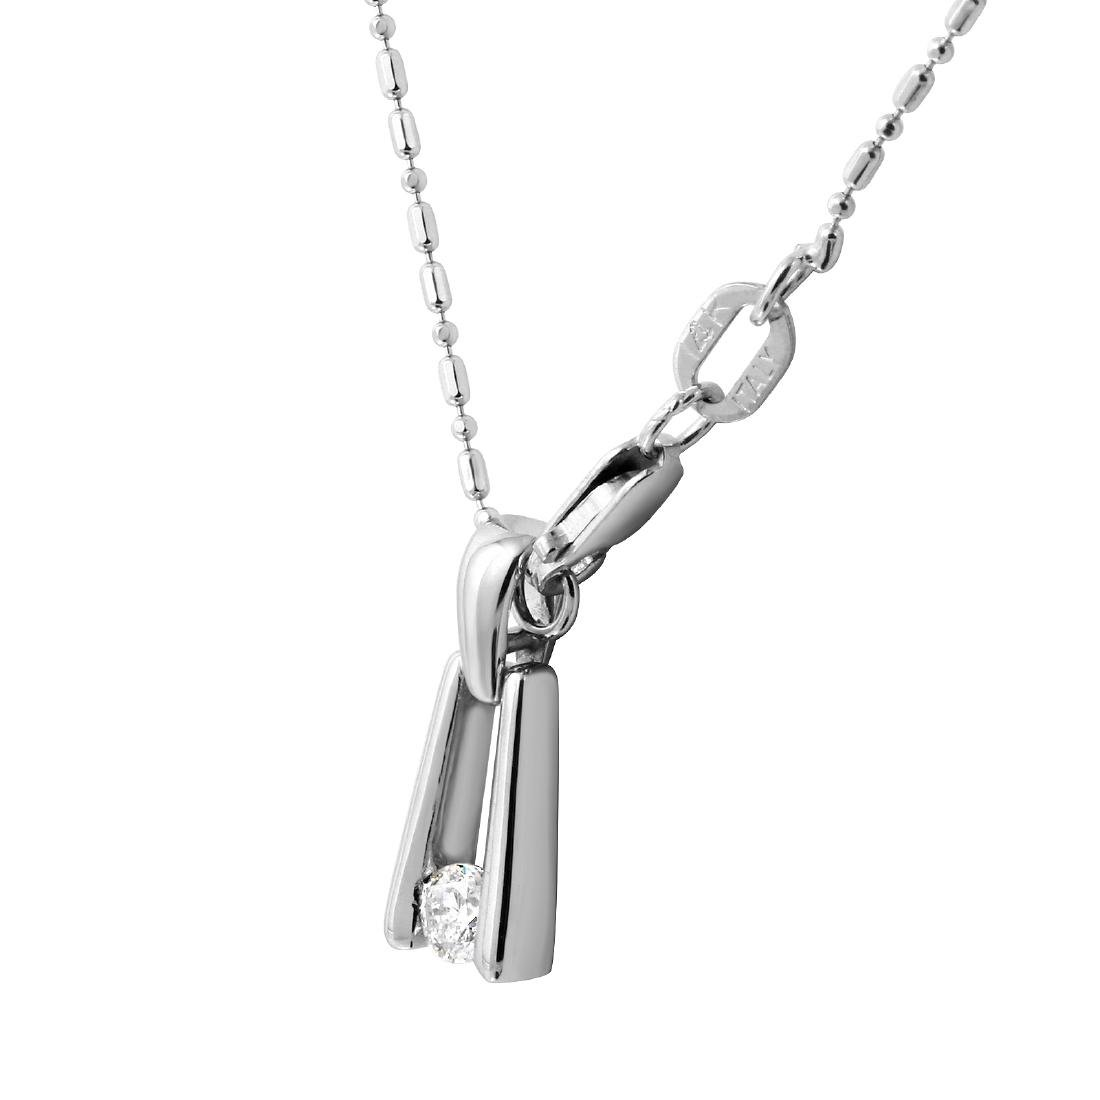 18KT White Gold & Platinum Diamond Necklace